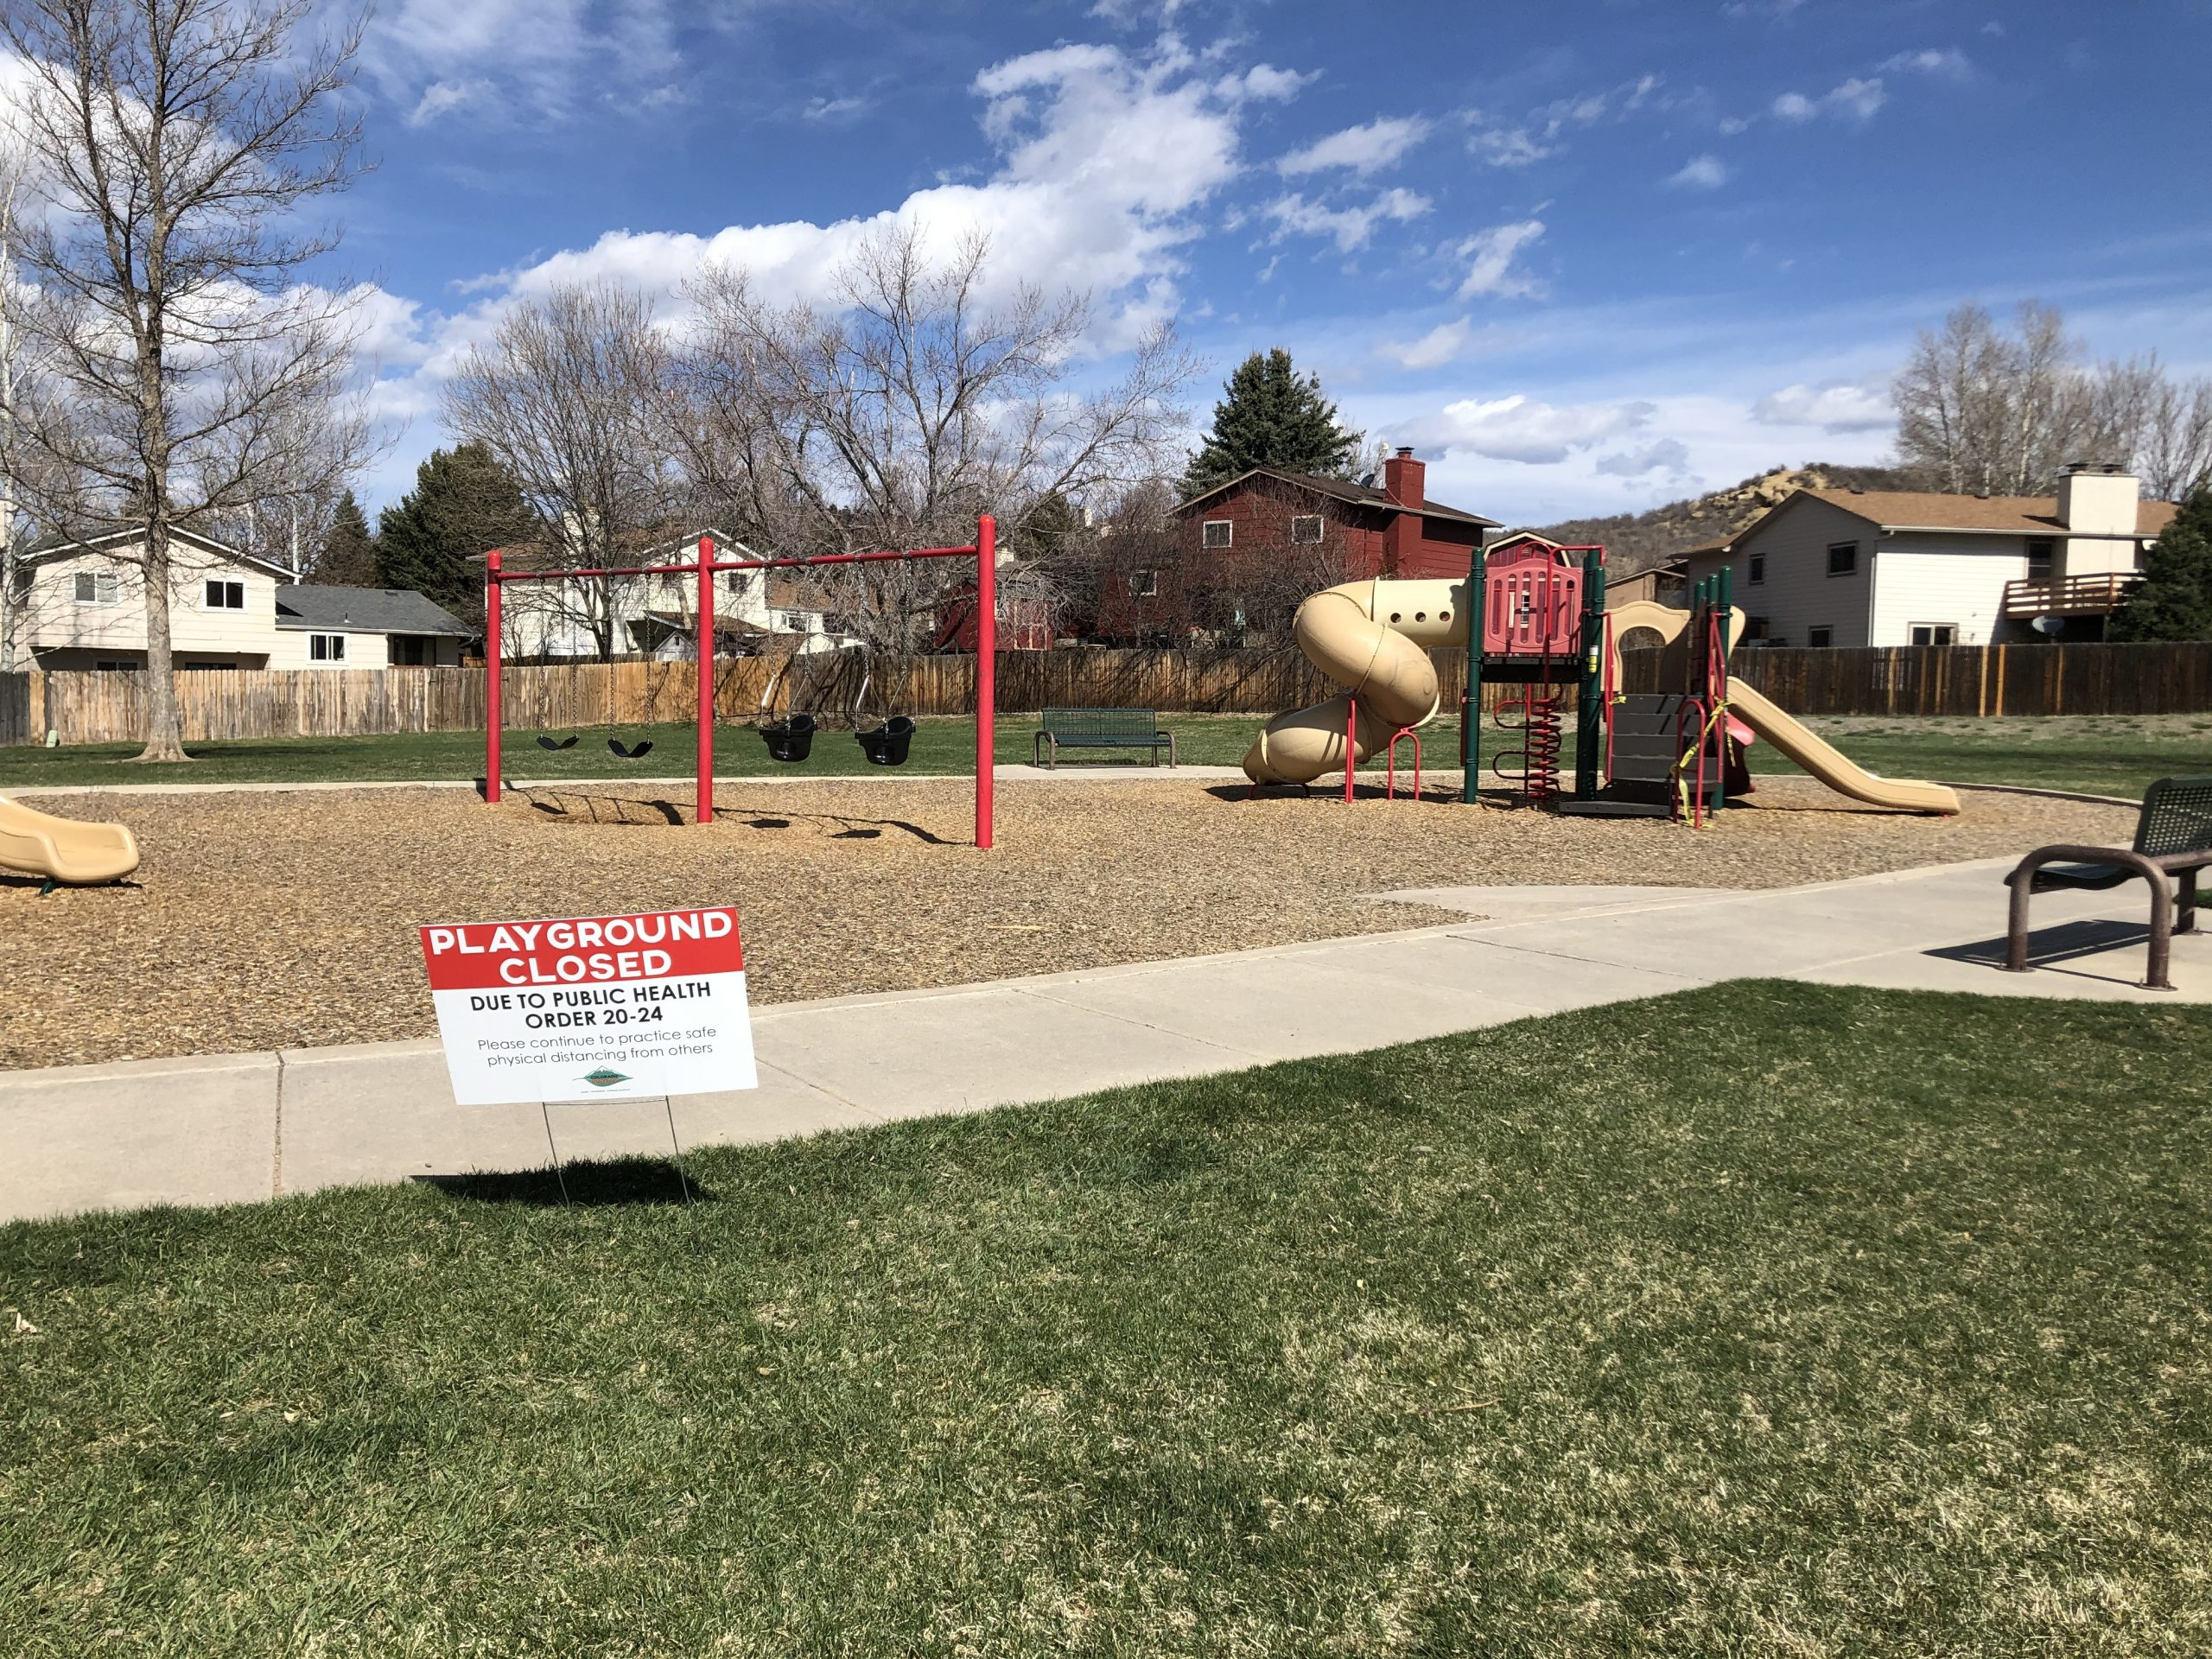 A closed Colorado Springs playground during the state's stay-at-home regulations. Still with the current safer-at-home regulations, playgrounds in the region remain closed. File photo.